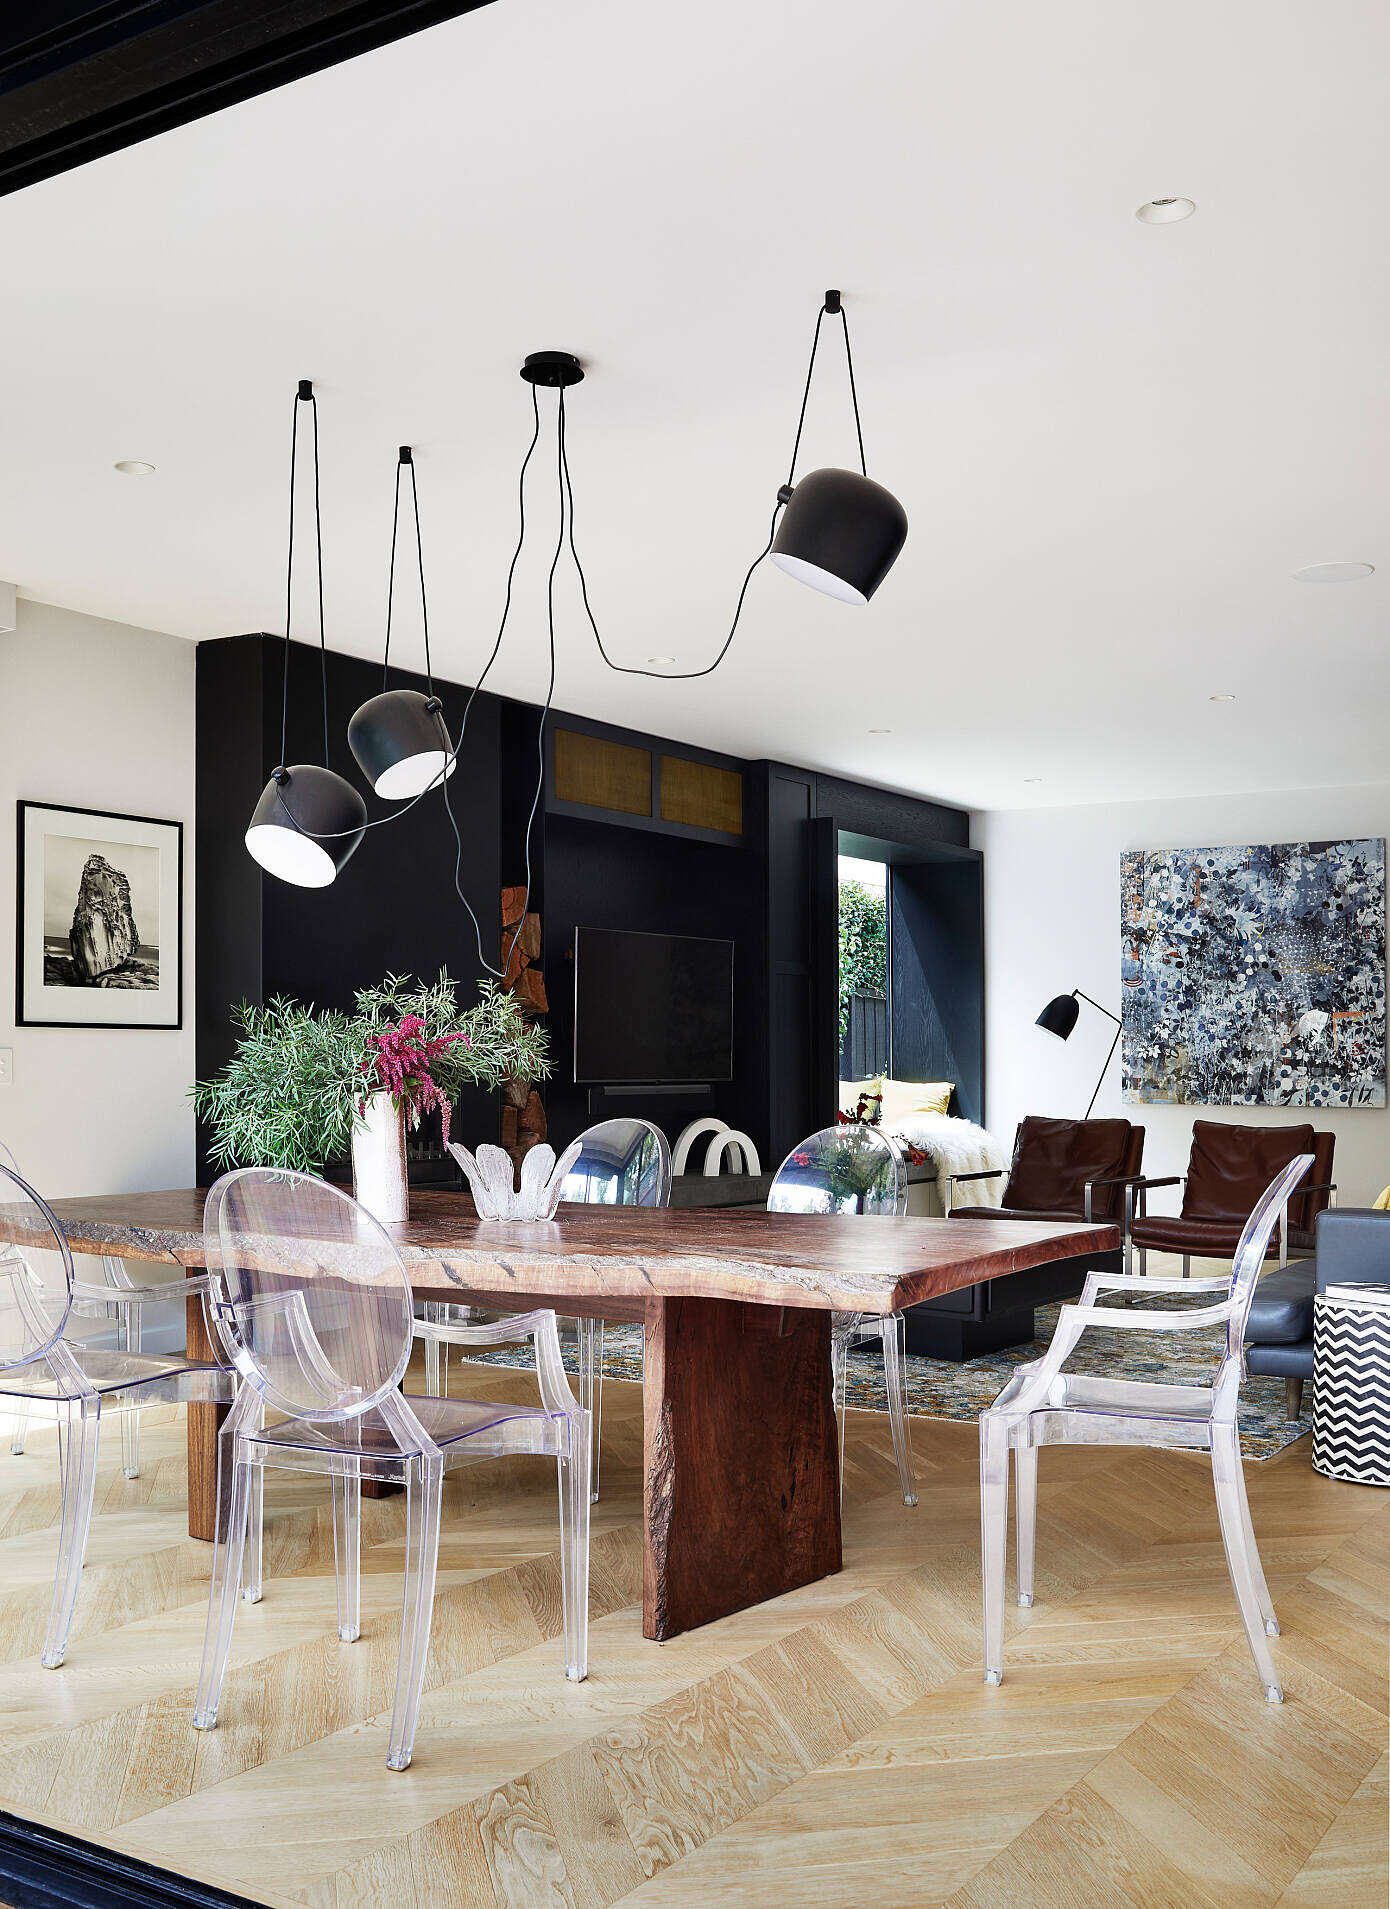 Malvern Project by Cranberry Design